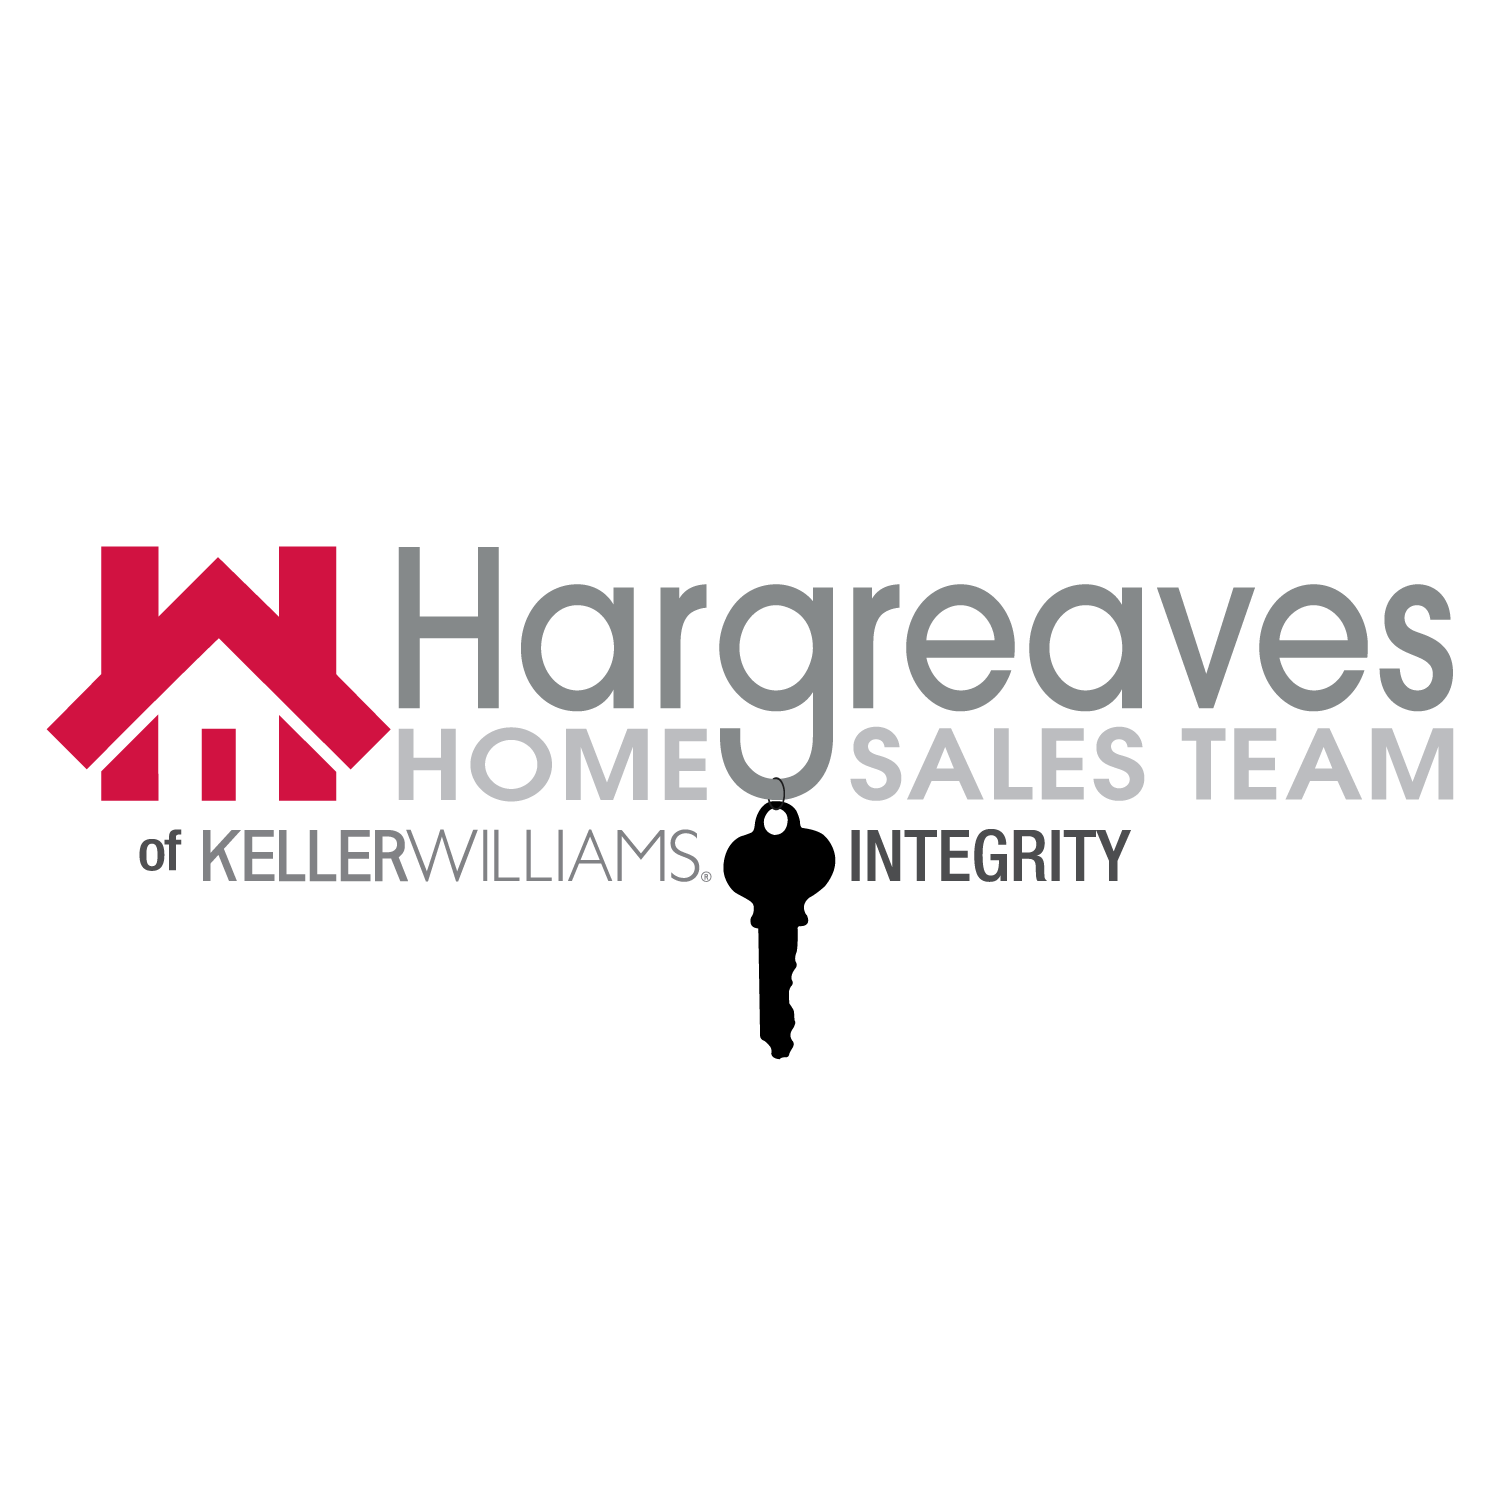 Hargreaves Home Sales Team logo